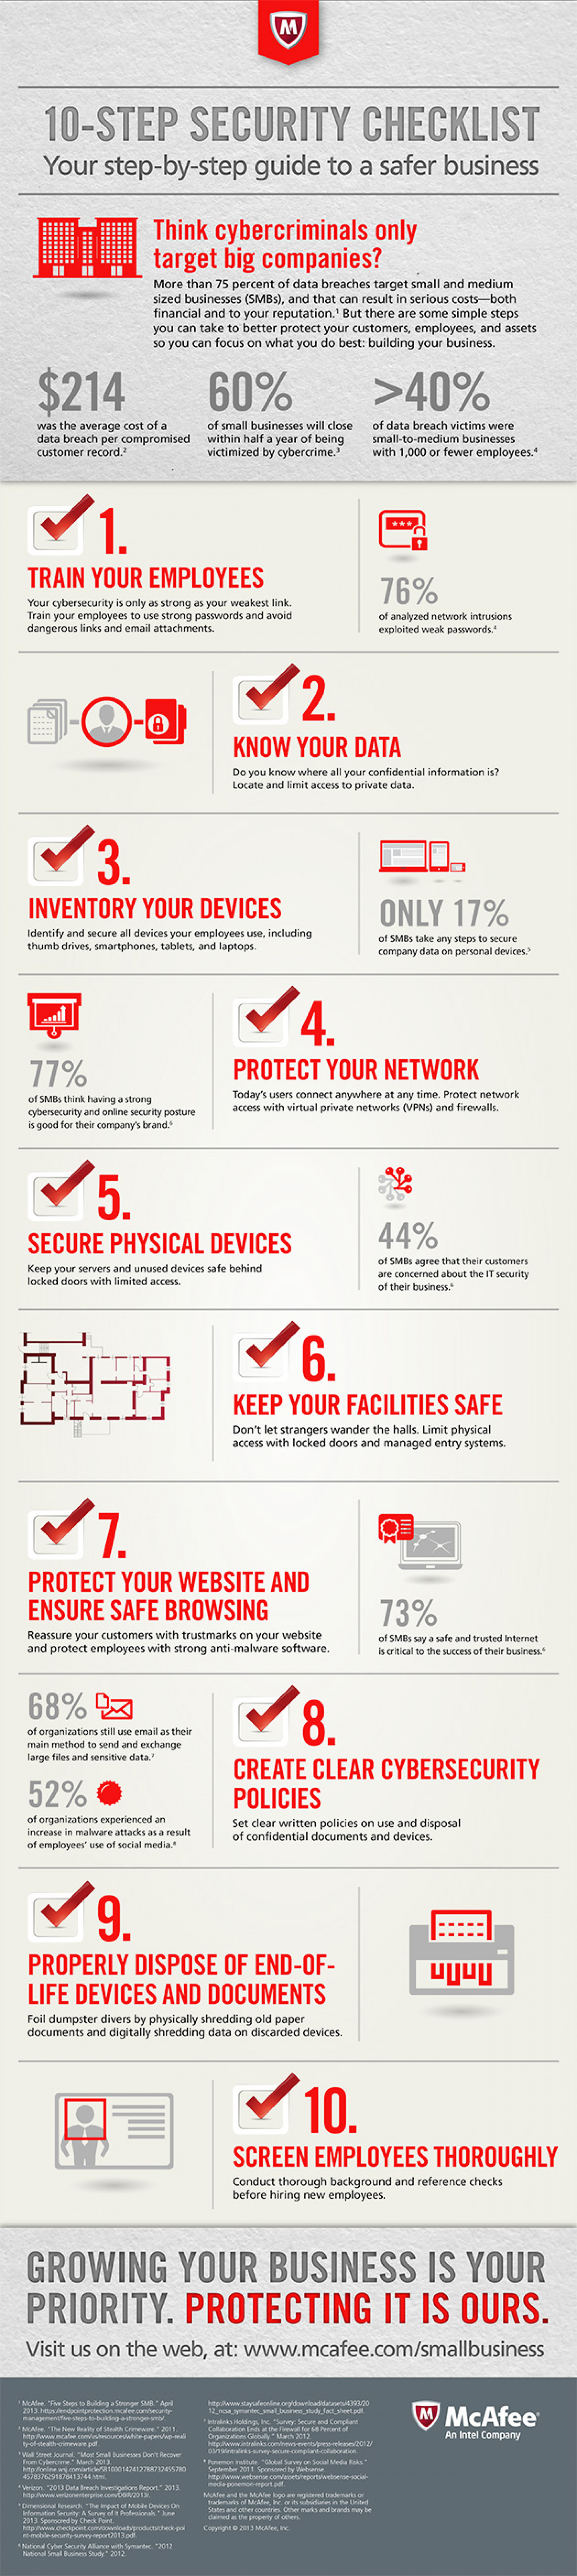 10-Step Security Checklist Infographic